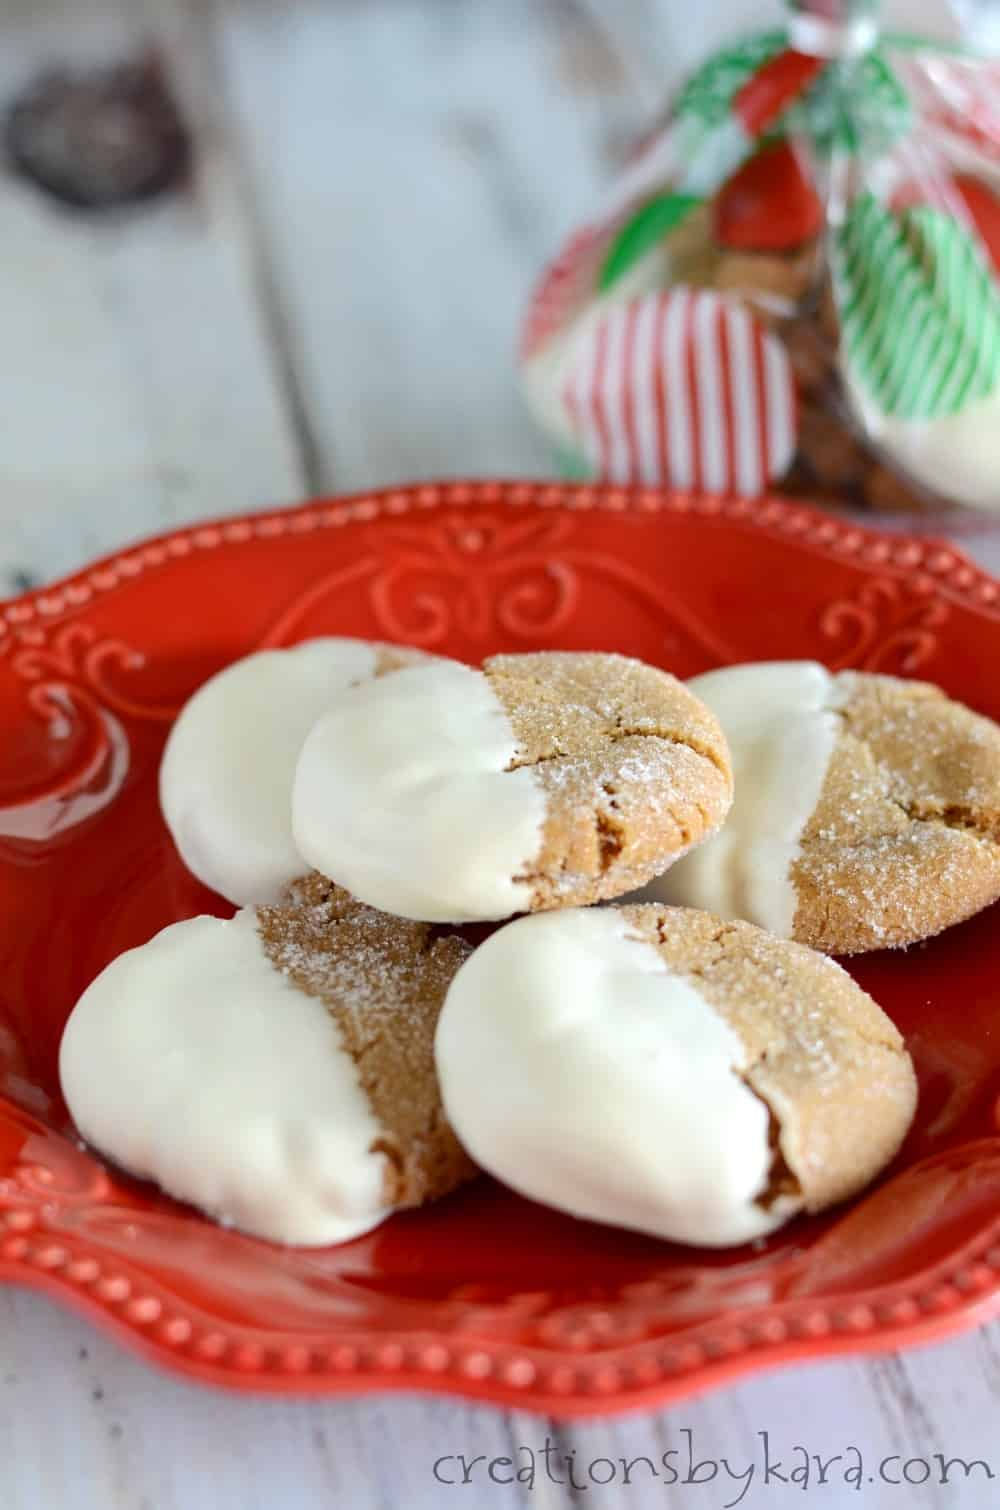 Soft and chewy, these ginger cookies are a family favorite. I always get recipe requests for these gingersnaps!